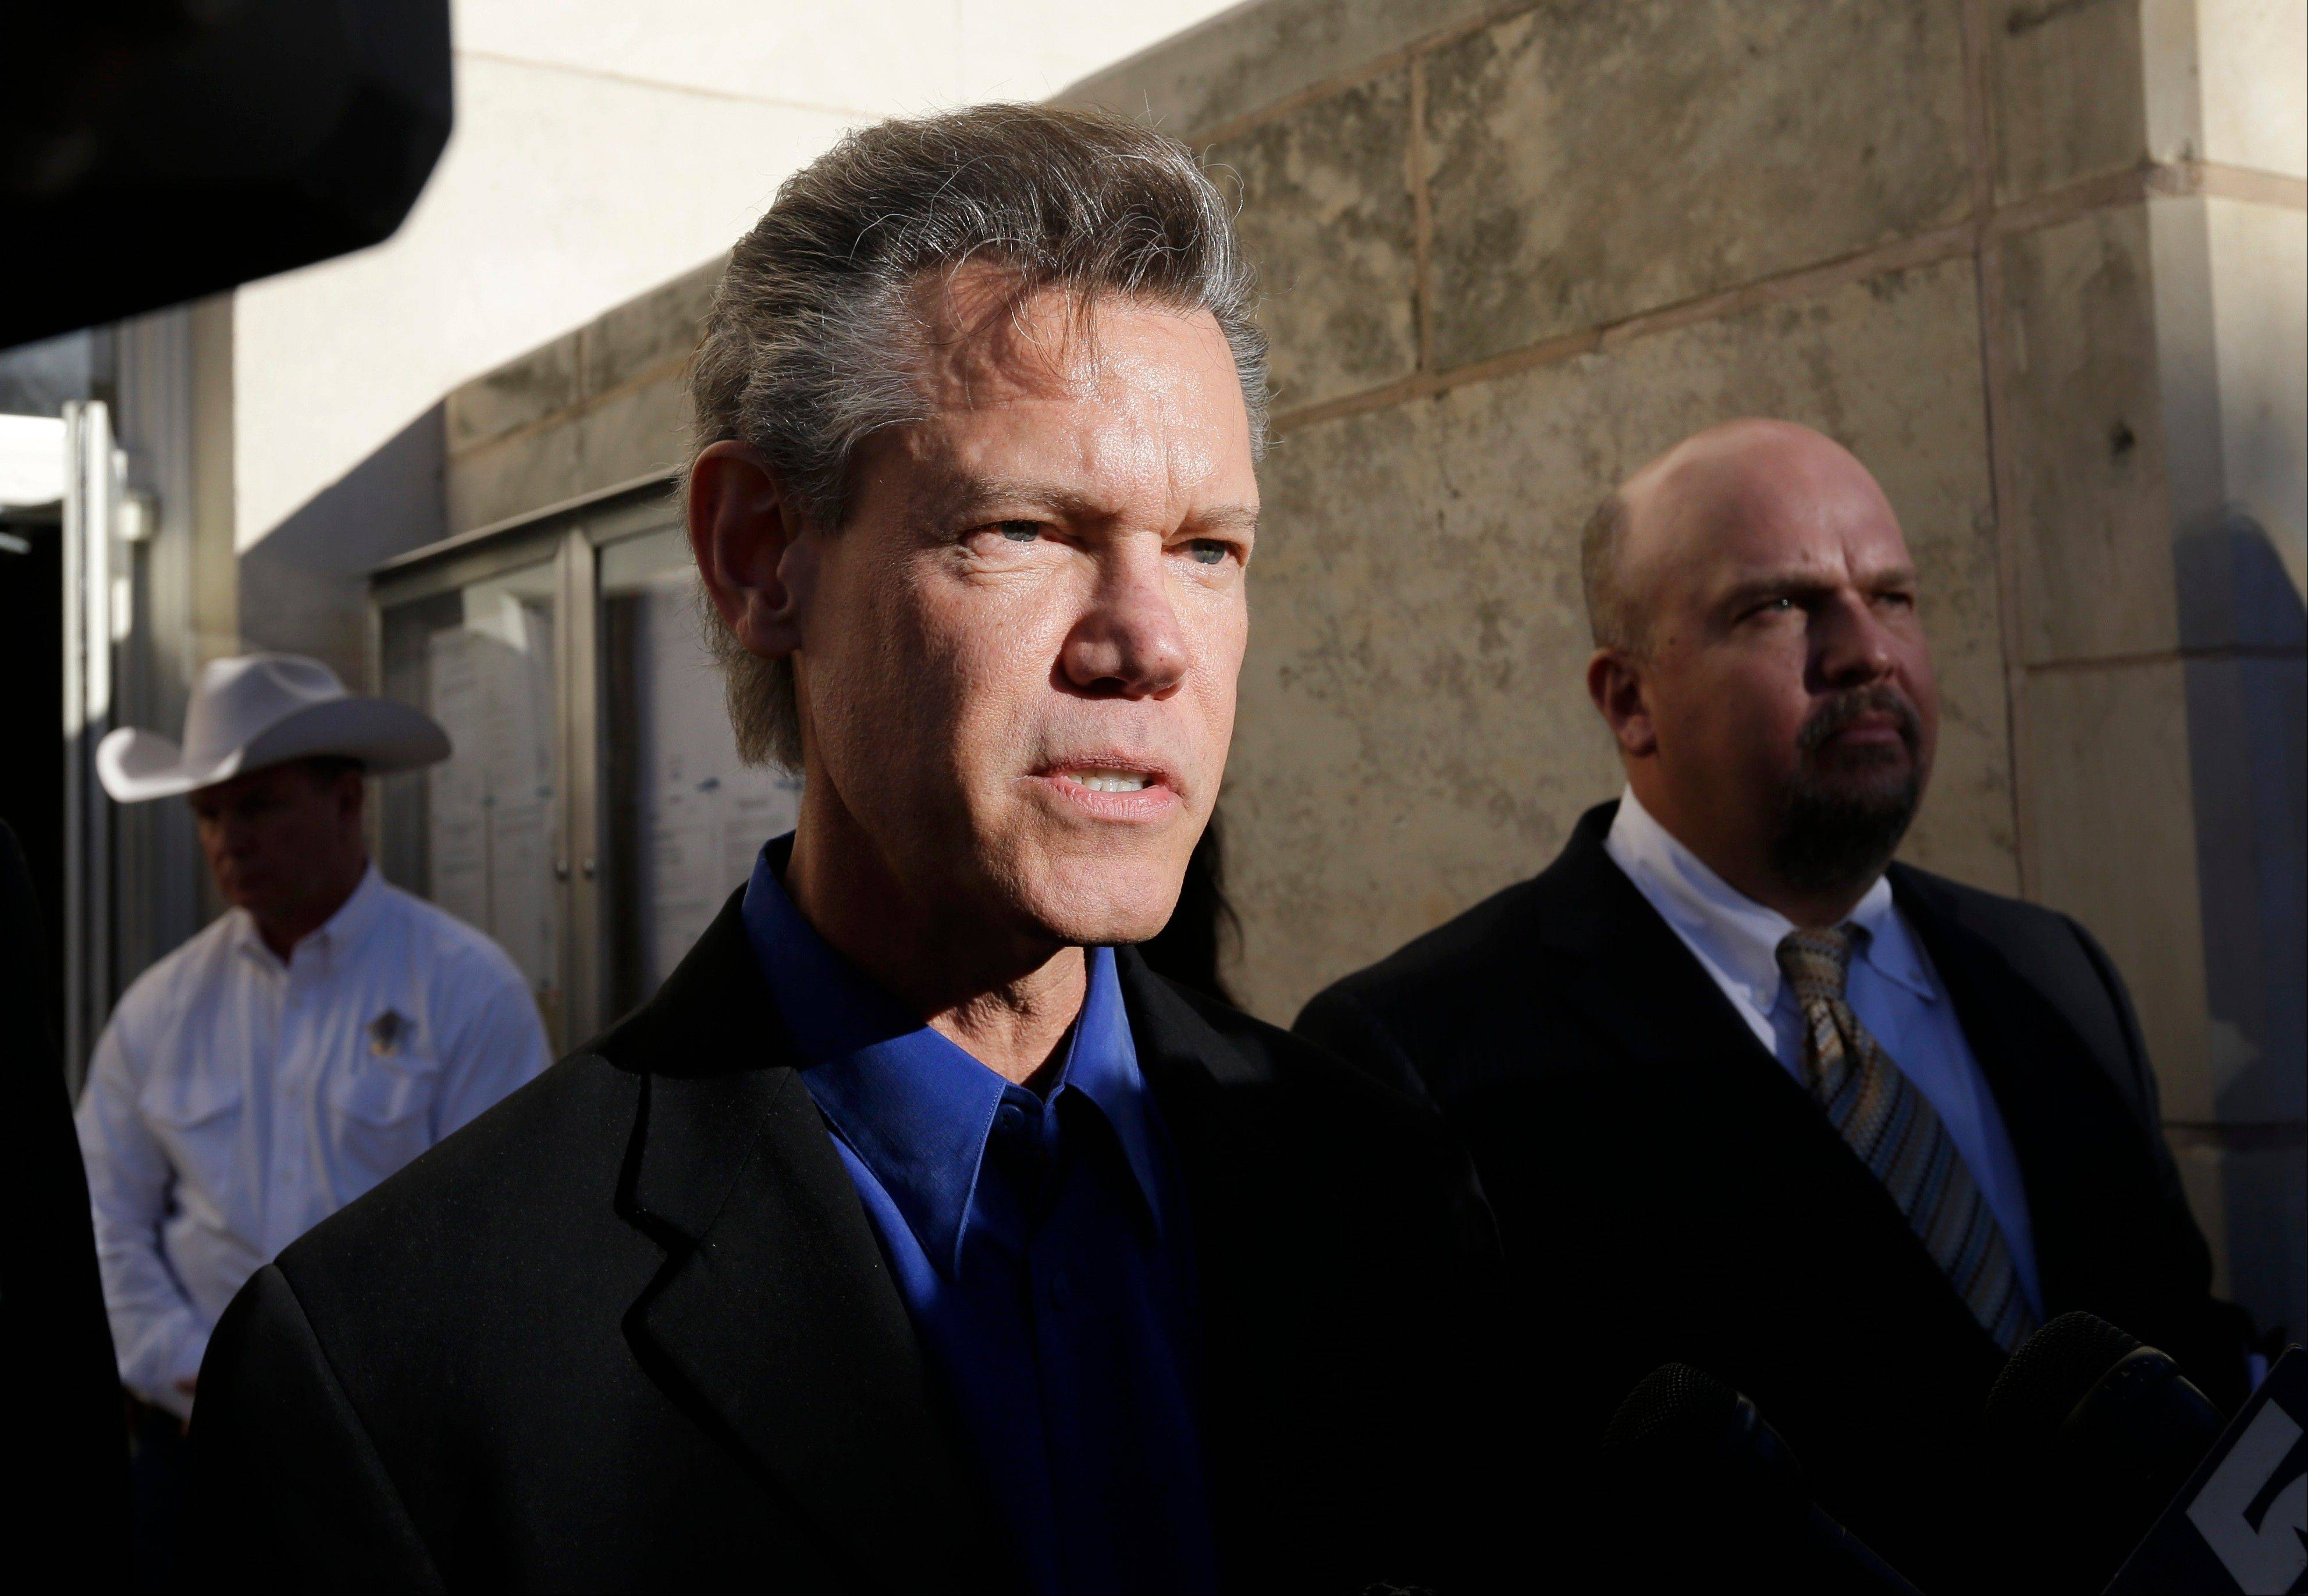 Country music star Randy Travis is out of the hospital three weeks after he was admitted with congestive heart failure and later suffered a stroke.